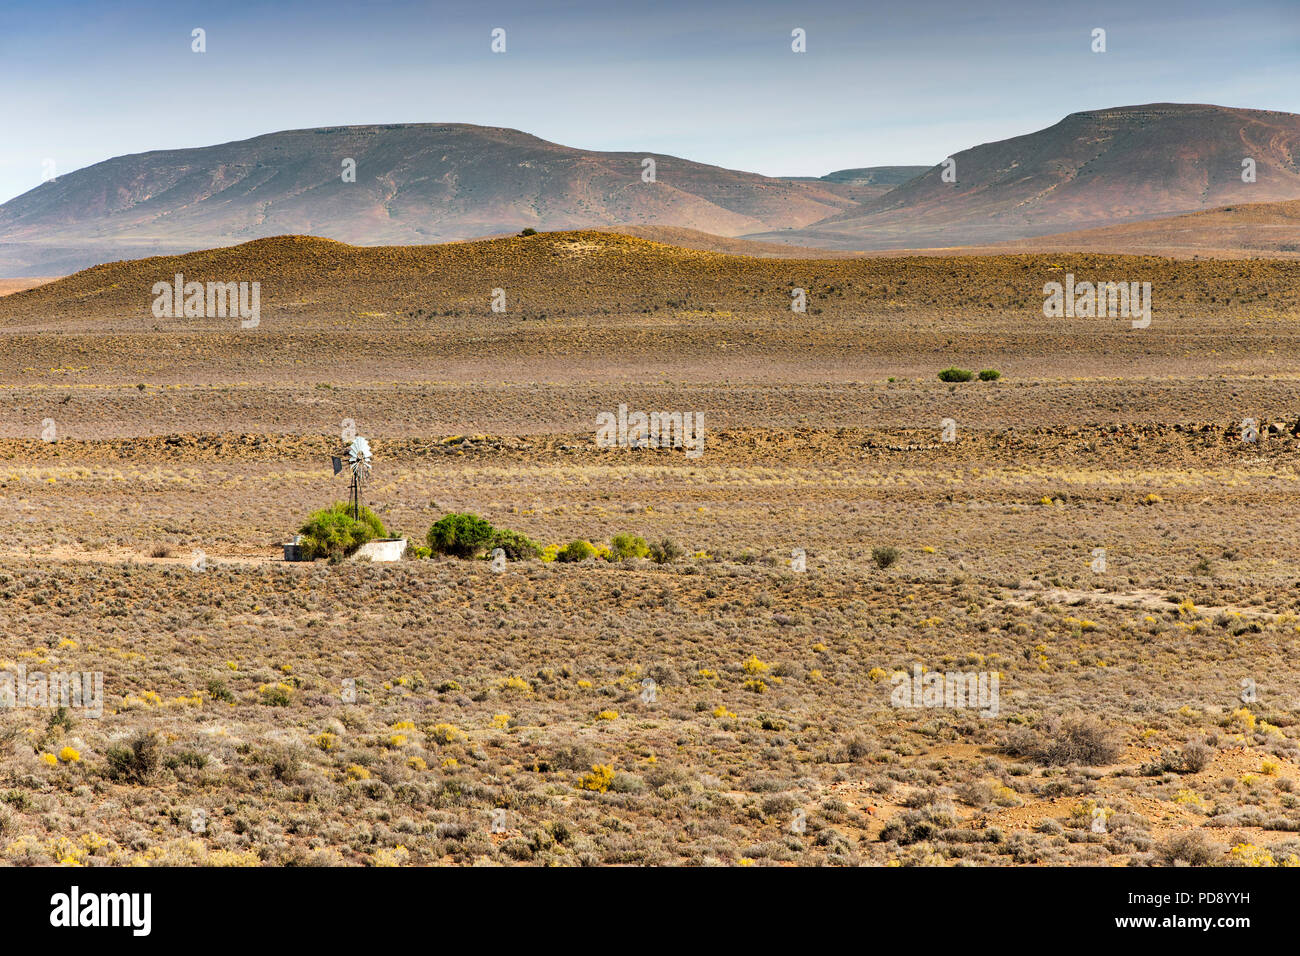 Windmill in the Karoo region of South Africa. - Stock Image